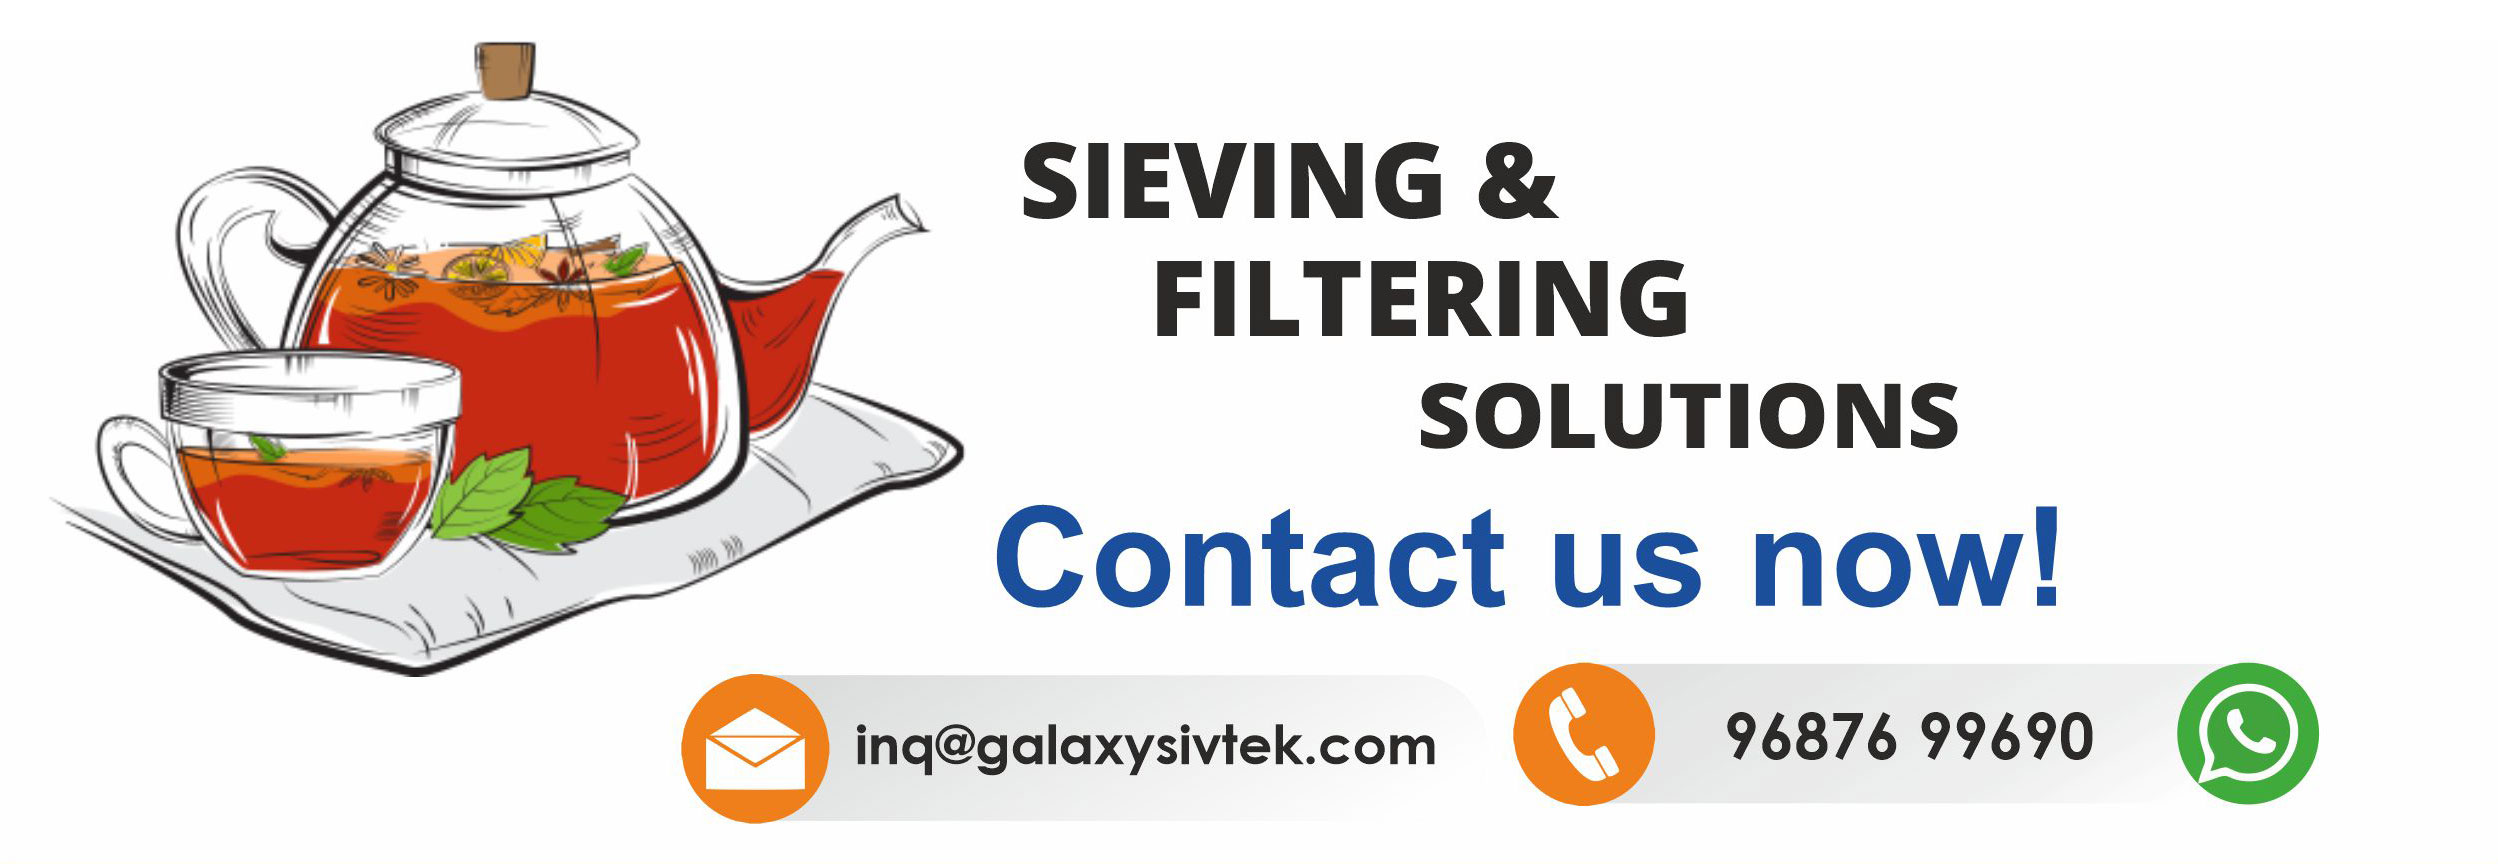 contact galaxy sivtek for sieving & filtration